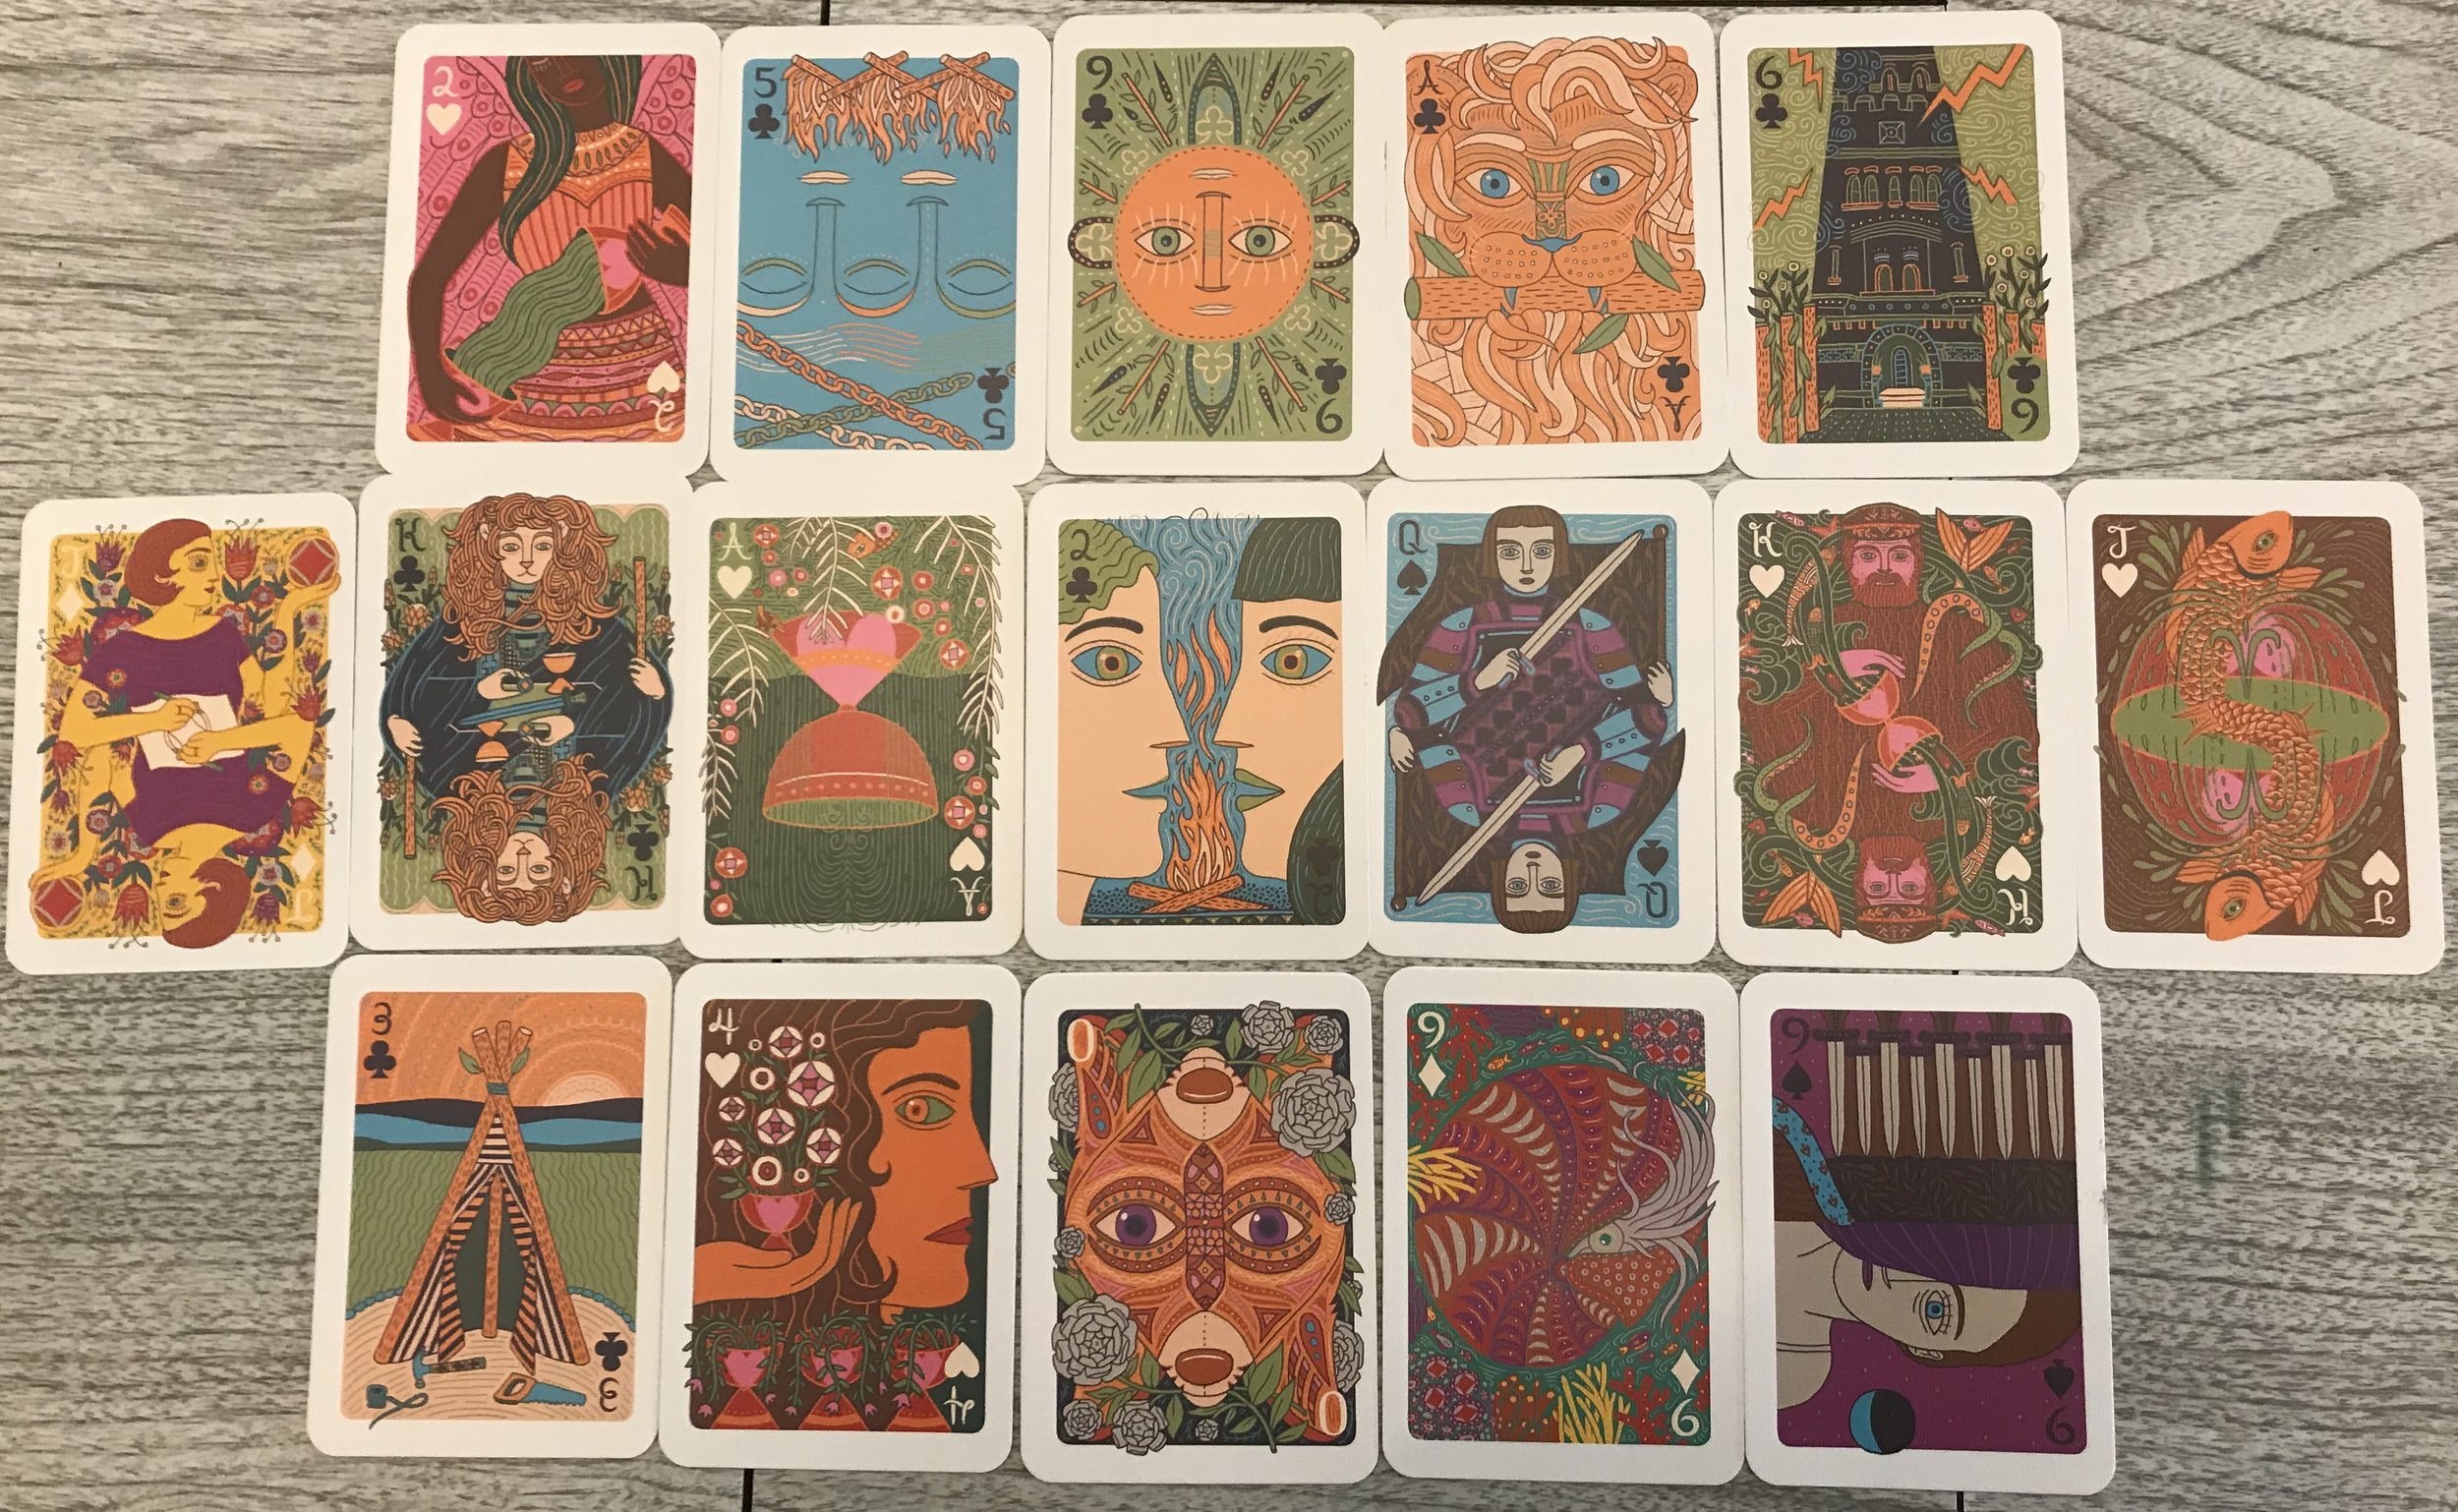 I use Caitlin Keegan's deck,   The Illuminated Tarot  . I like it because the cards are beautiful, the writing is simple and open-ended, and the deck is reduced to the size of a standard deck of playing cards which works great for my compositional system.